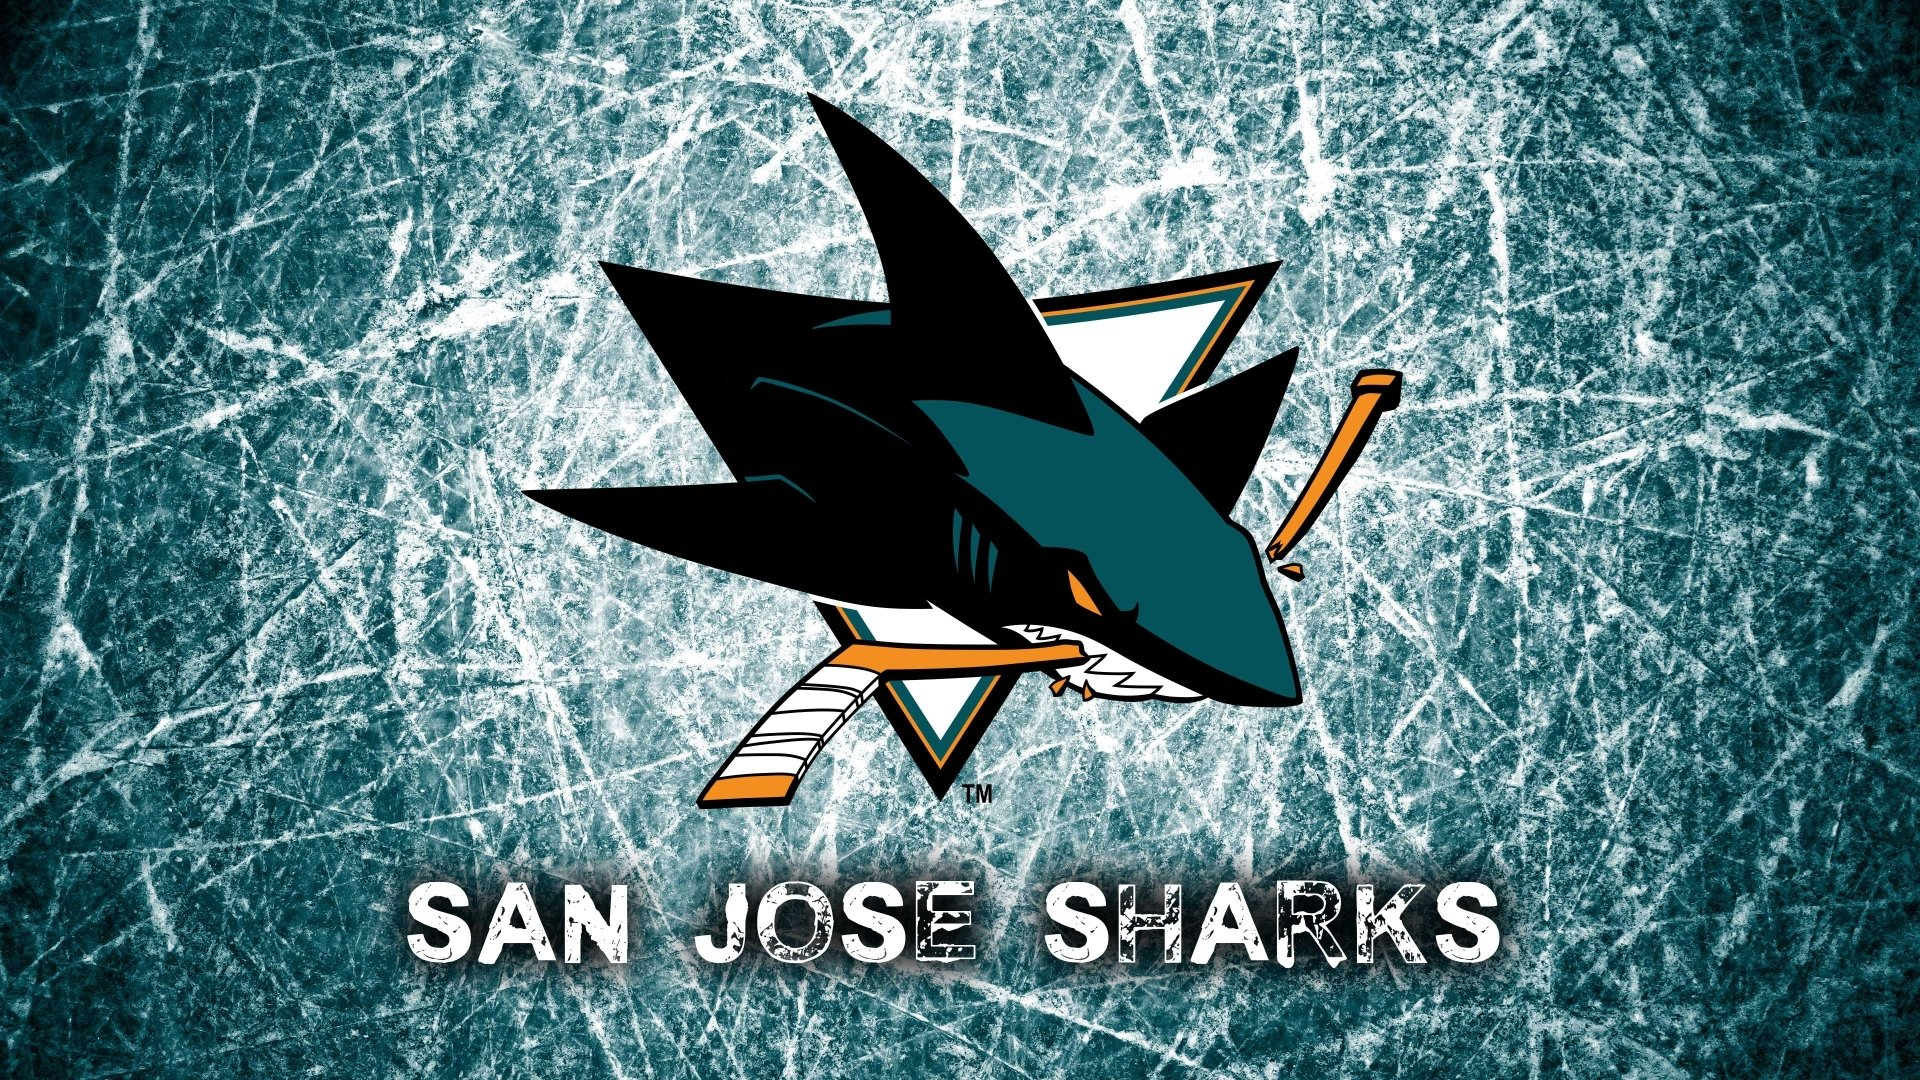 20 San Jose Sharks HD Wallpapers Background Images 1920x1080